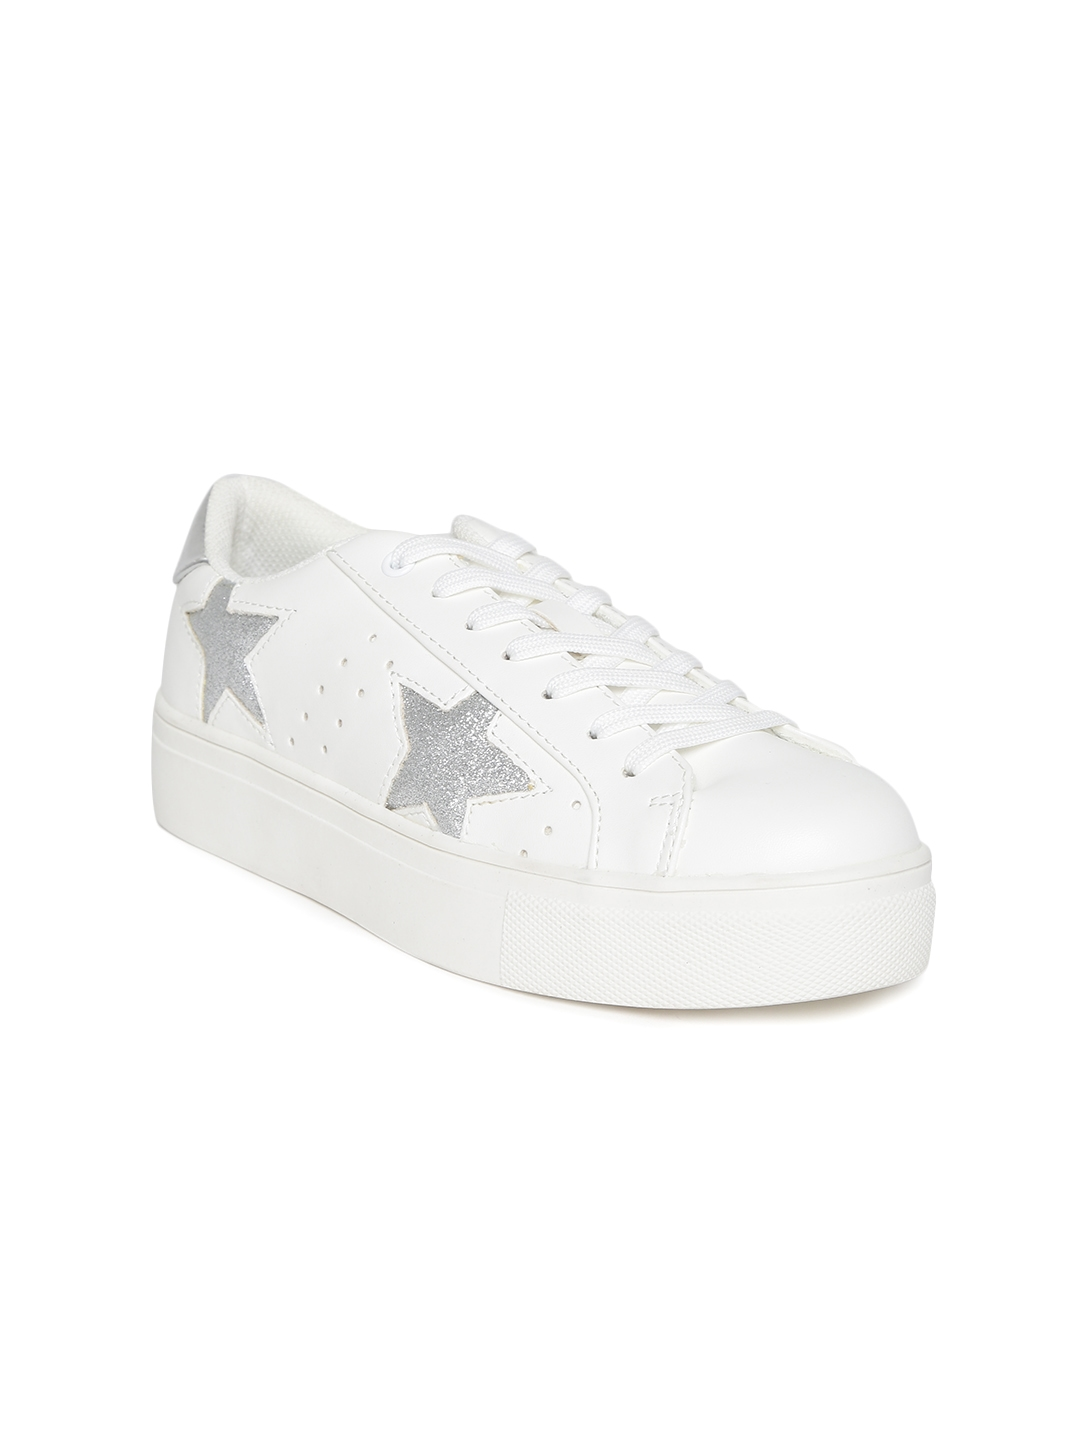 243ea8c5014 Madden Girl by Steve Madden Women Off-White Perforated Star-Shaped  Patterned Sneakers